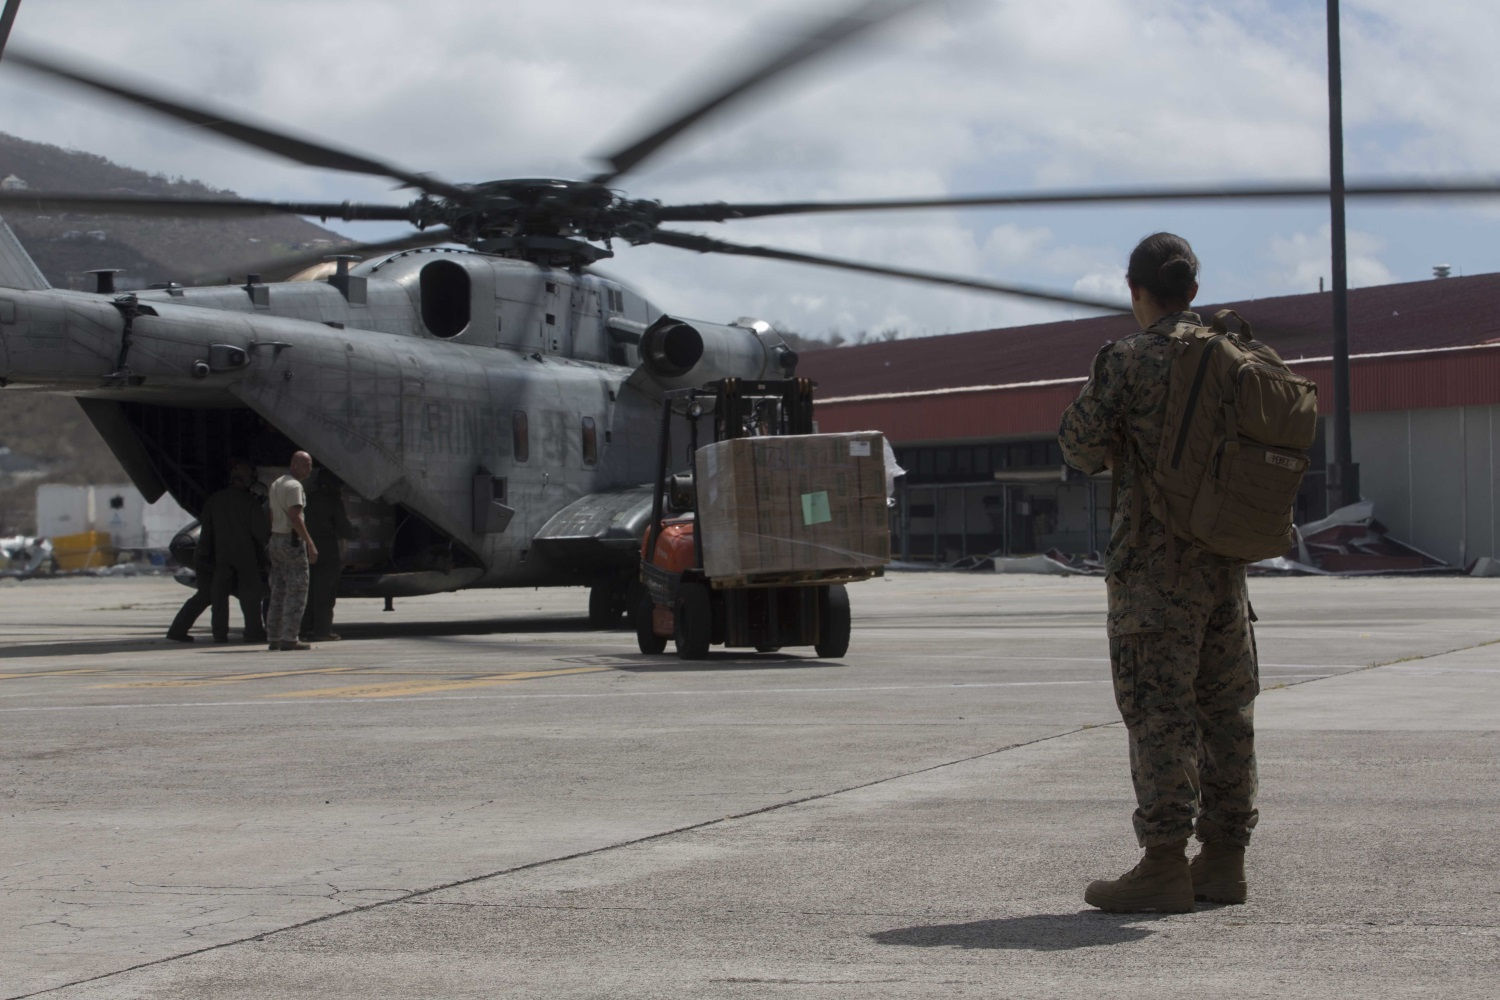 U.S. Marine Corps 1st Lt. Paloma D. Perezurena, a logistics officer with the 26th Marine Expeditionary Unit (MEU), observes U.S. Marines and U.S. Airmen unload humanitarian resources from a CH-53 Super Stallion helicopter with the 26th MEU, to support relief efforts in St. Thomas, U.S. Virgin Islands, Sep. 10, 2017. (Lance Cpl. Santino D. Martinez/Marine Corps)